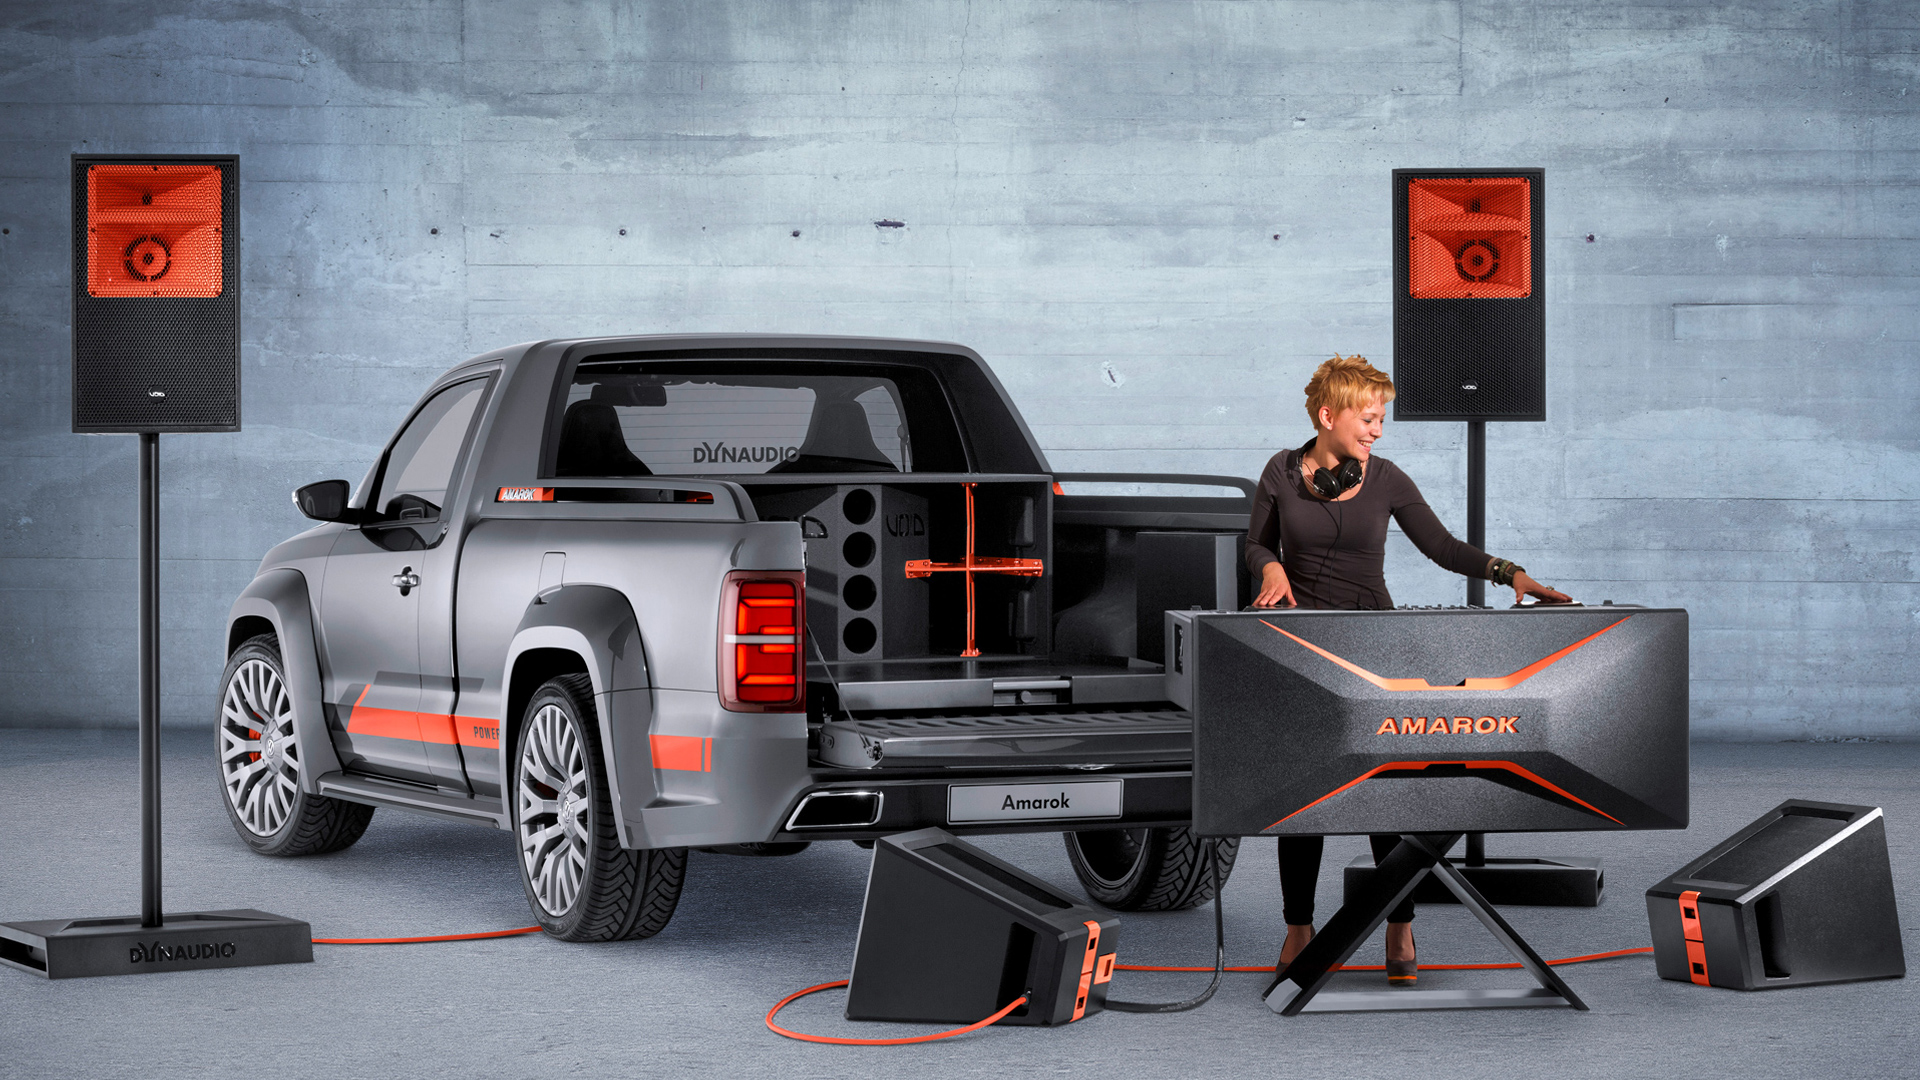 vw amarok edelmat berlin event integrator. Black Bedroom Furniture Sets. Home Design Ideas